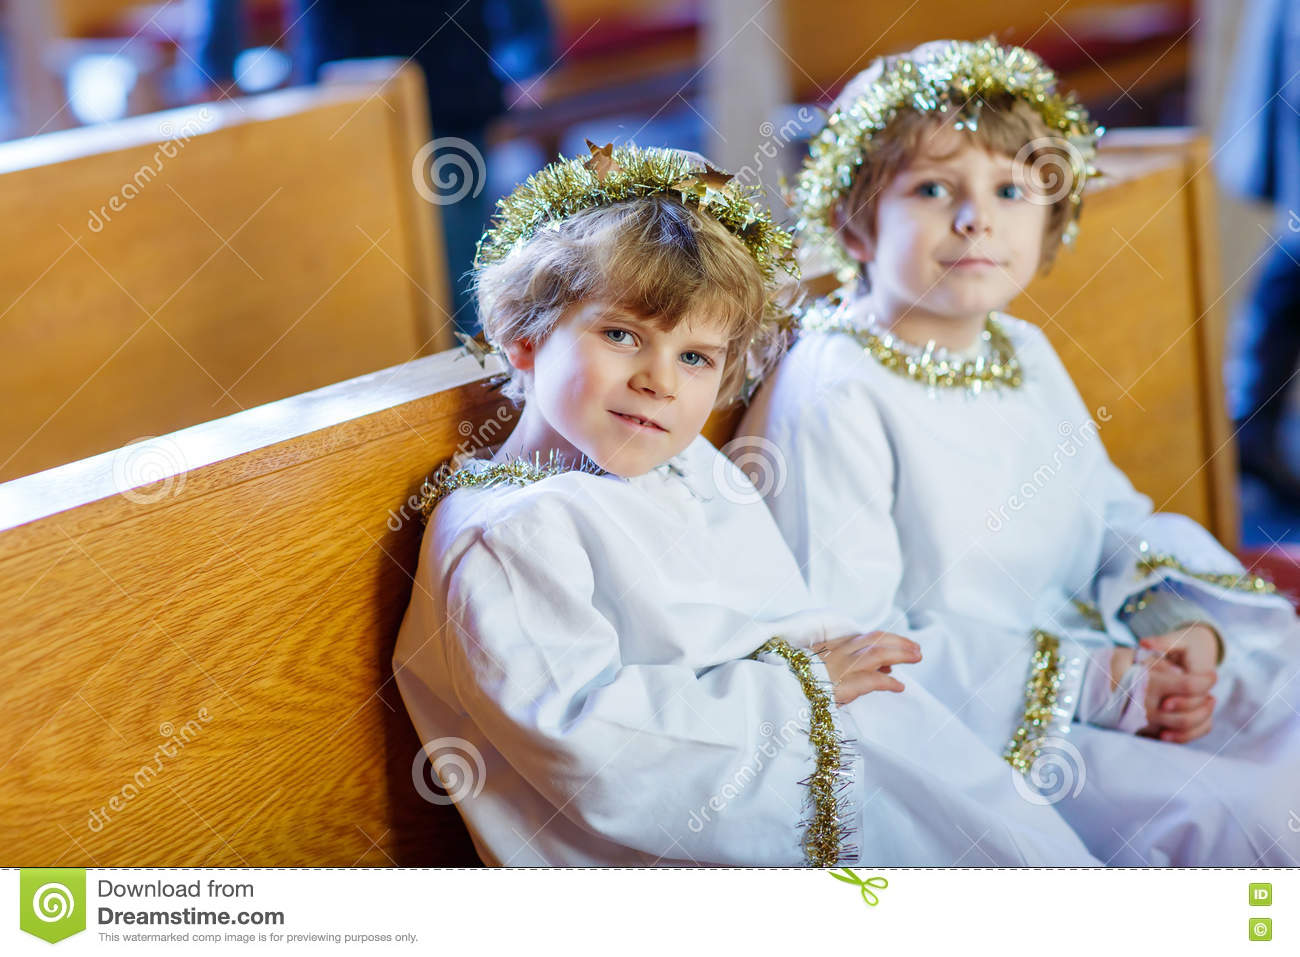 Angel Of Christmas.Two Little Boys Playing An Angel Of Christmas Story In